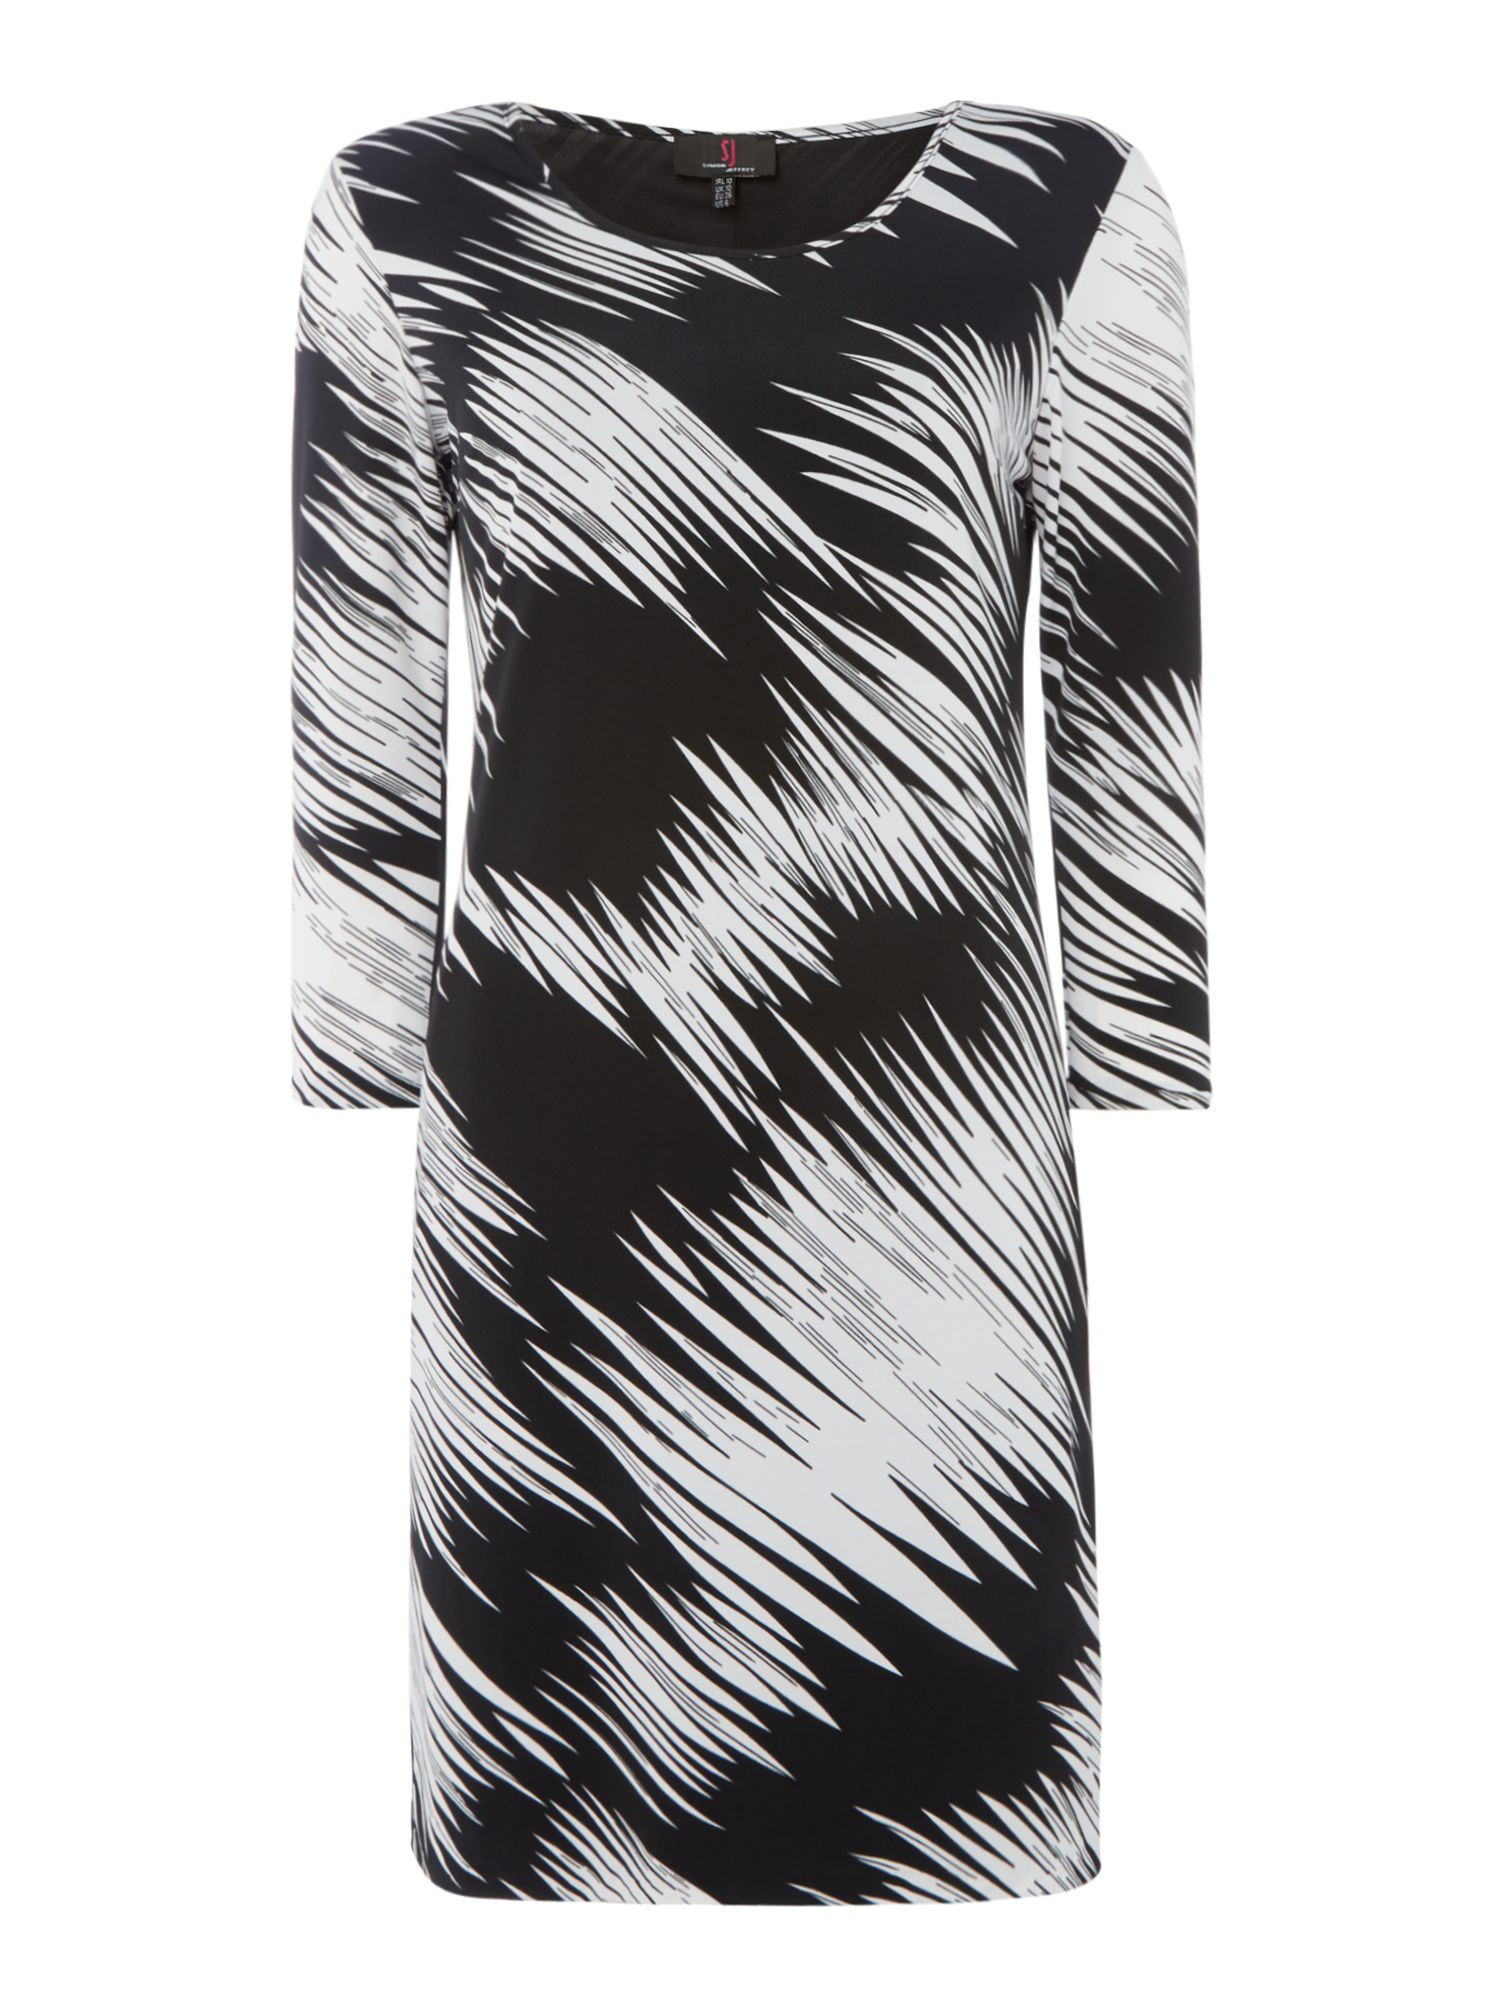 Simon Jeffrey Printed Shift Dress, Black